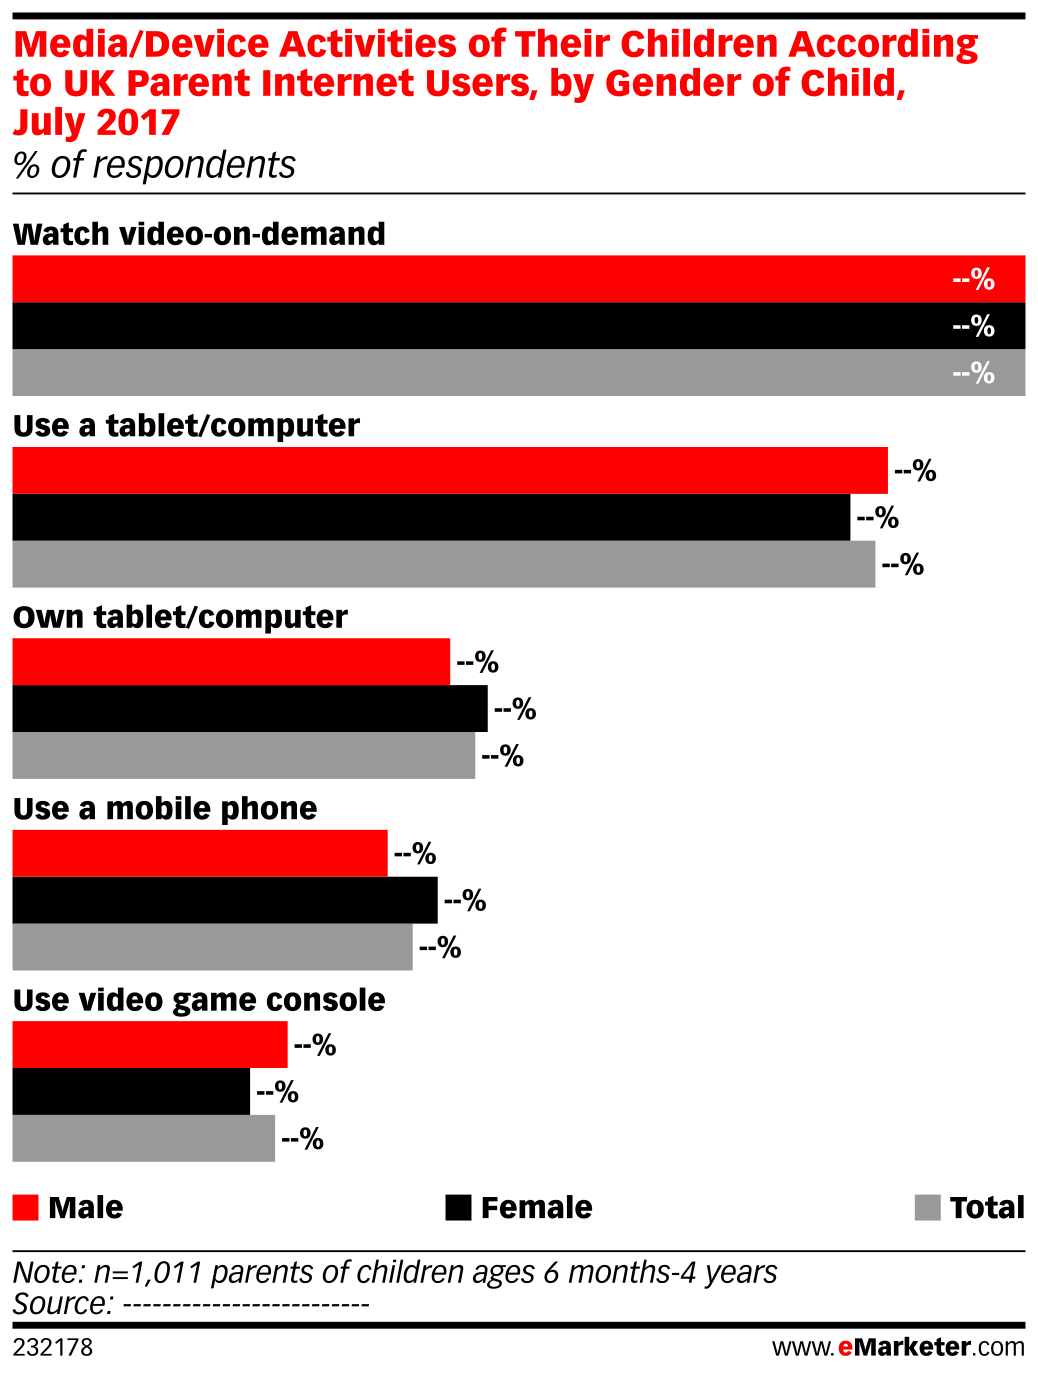 Media/Device Activities of Their Children According to UK Parent Internet Users, by Gender of Child, July 2017 (% of respondents)